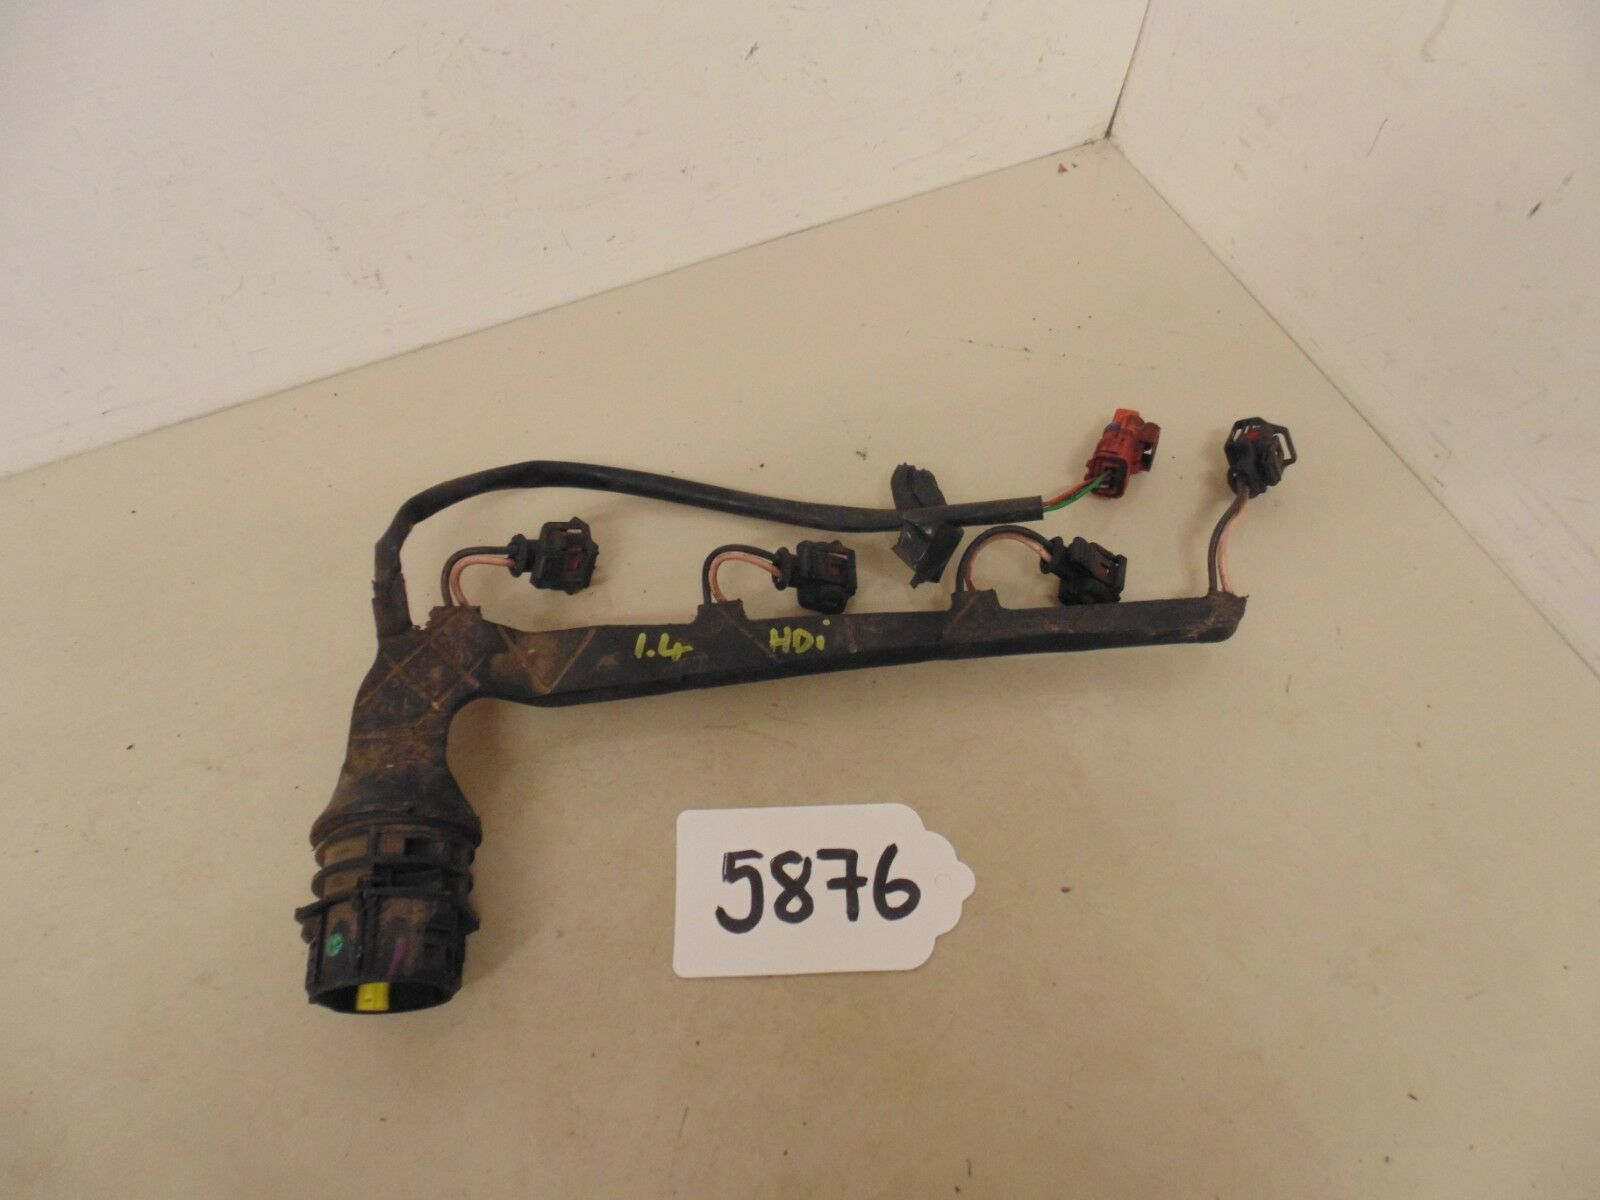 2005 Peugeot 307 14 Hdi Diesel Injector Wiring Loom 9638163180 8hx 206 Norton Secured Powered By Verisign